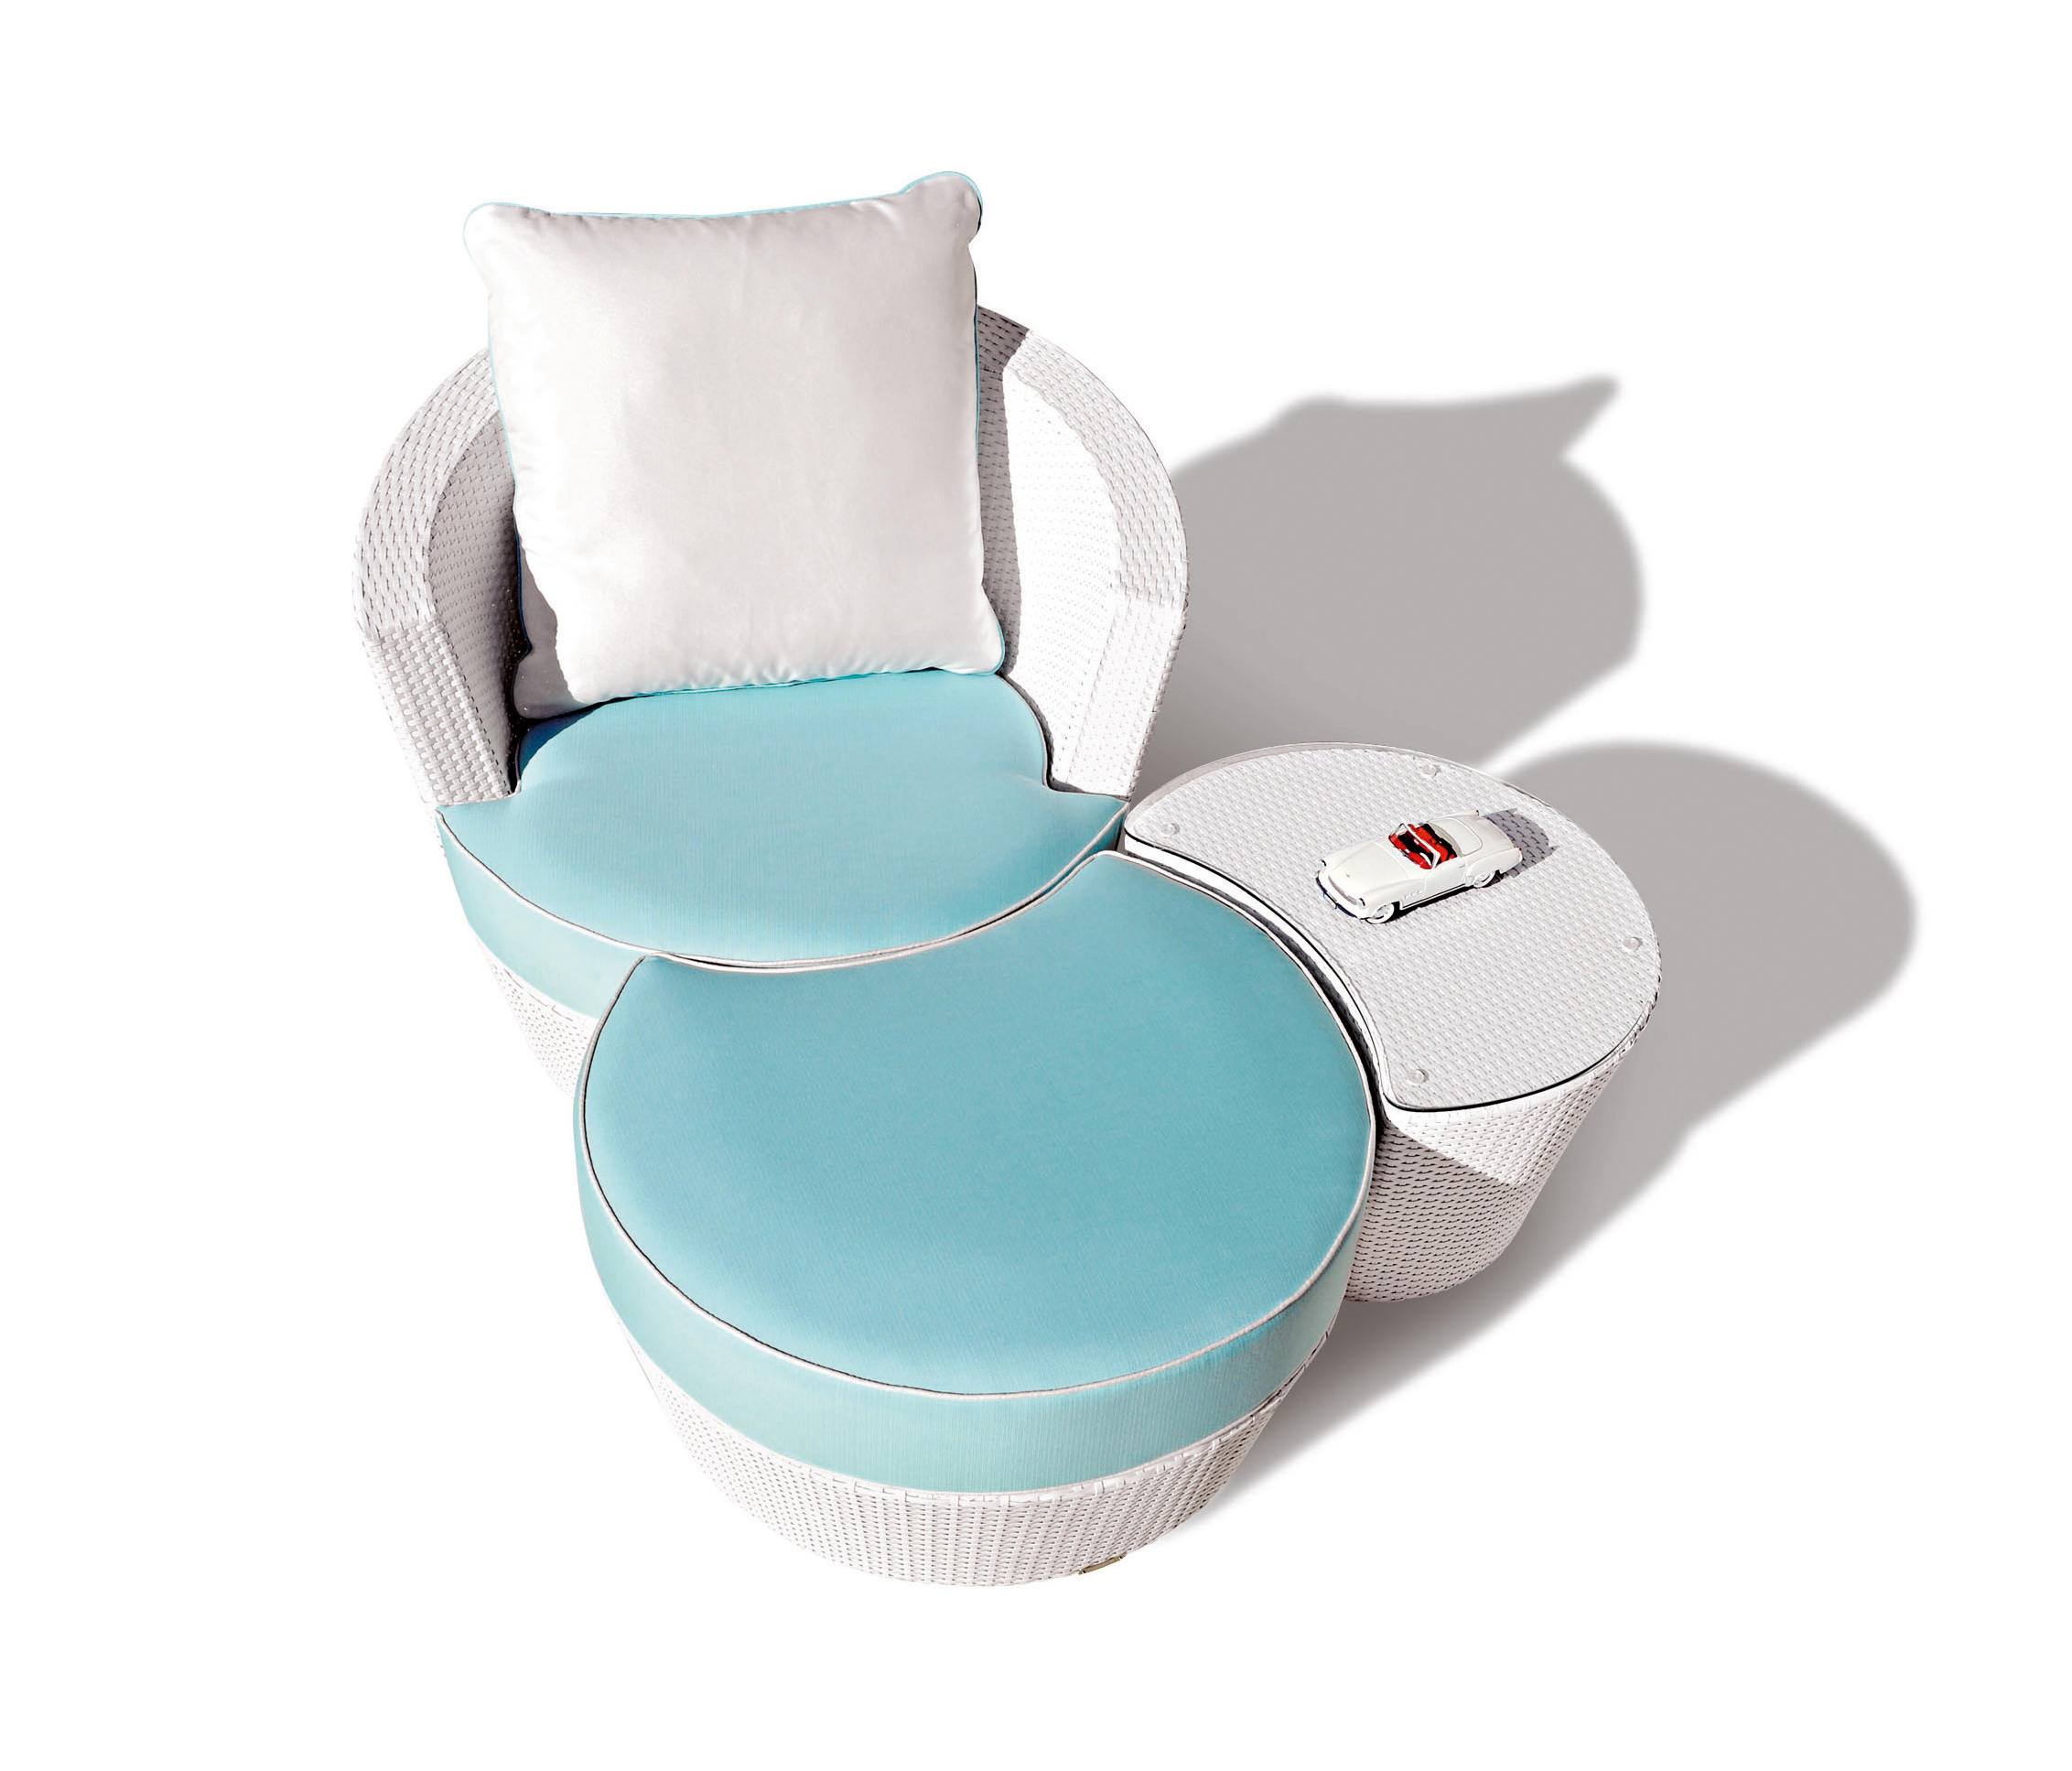 eden roc combination with lounge chair